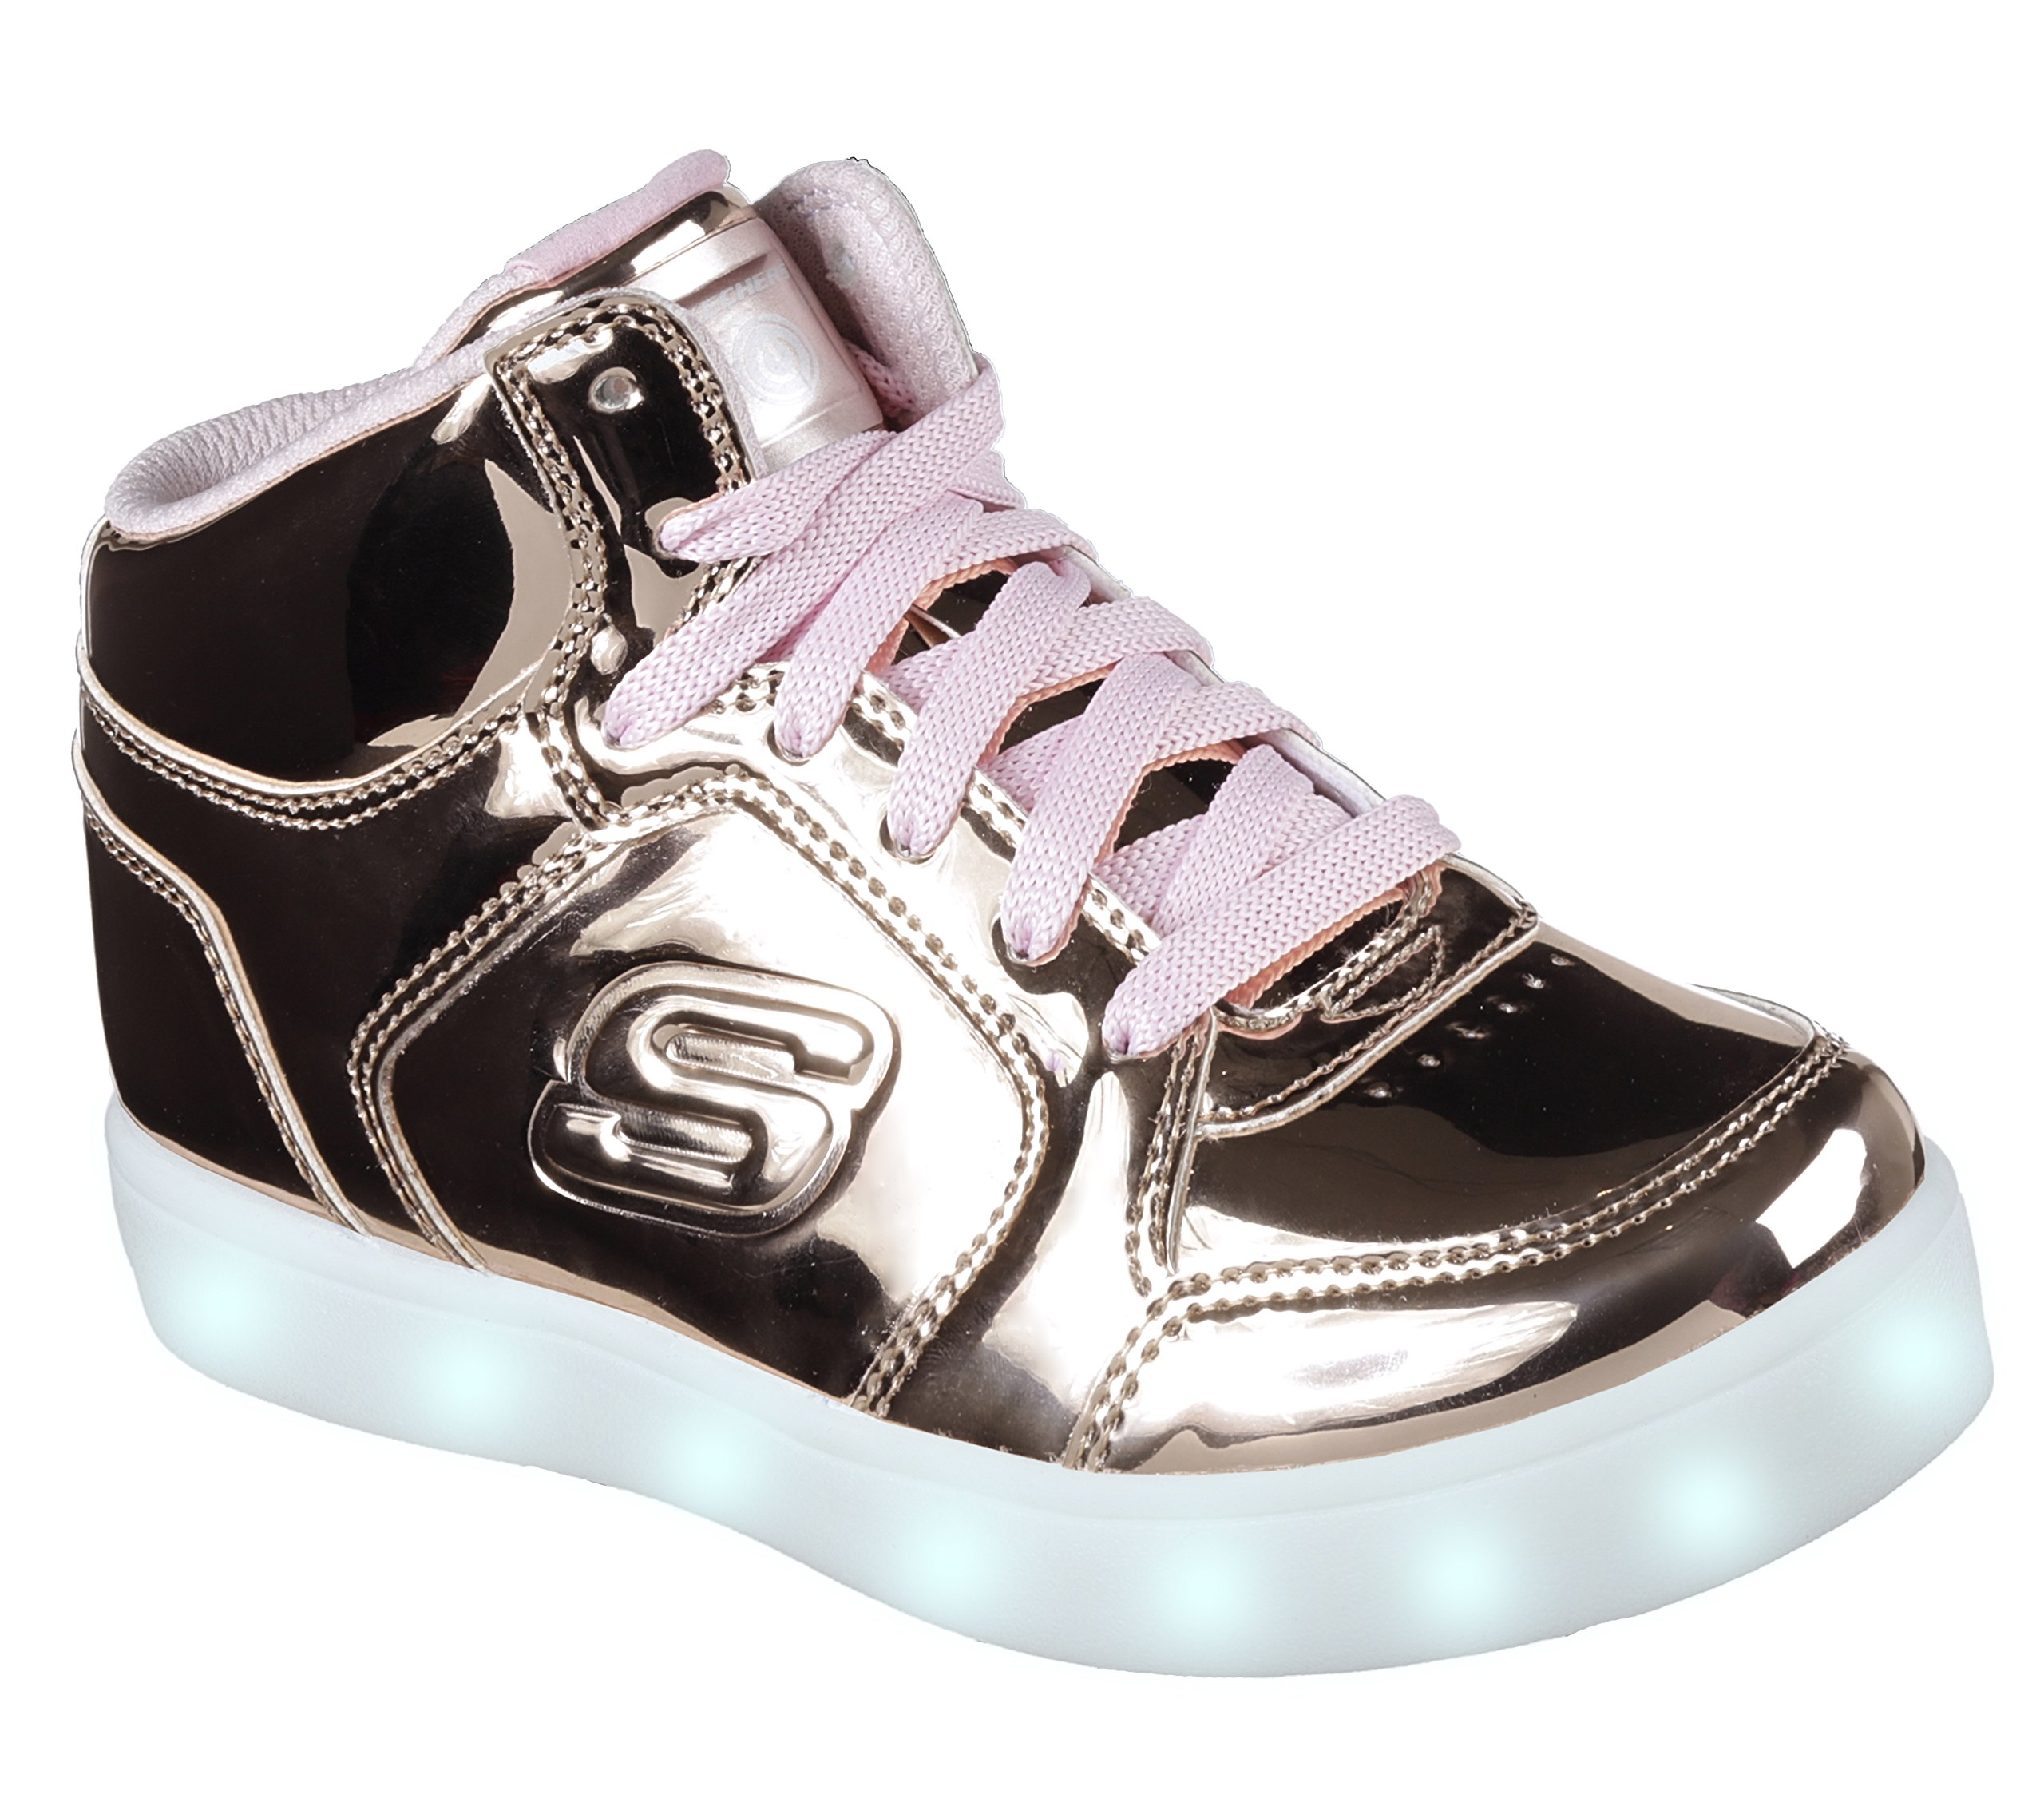 Skechers Kids Energy Lights-Dance-N-Dazzle Sneaker,Rose Gold,1 M US Little Kid by Skechers (Image #1)